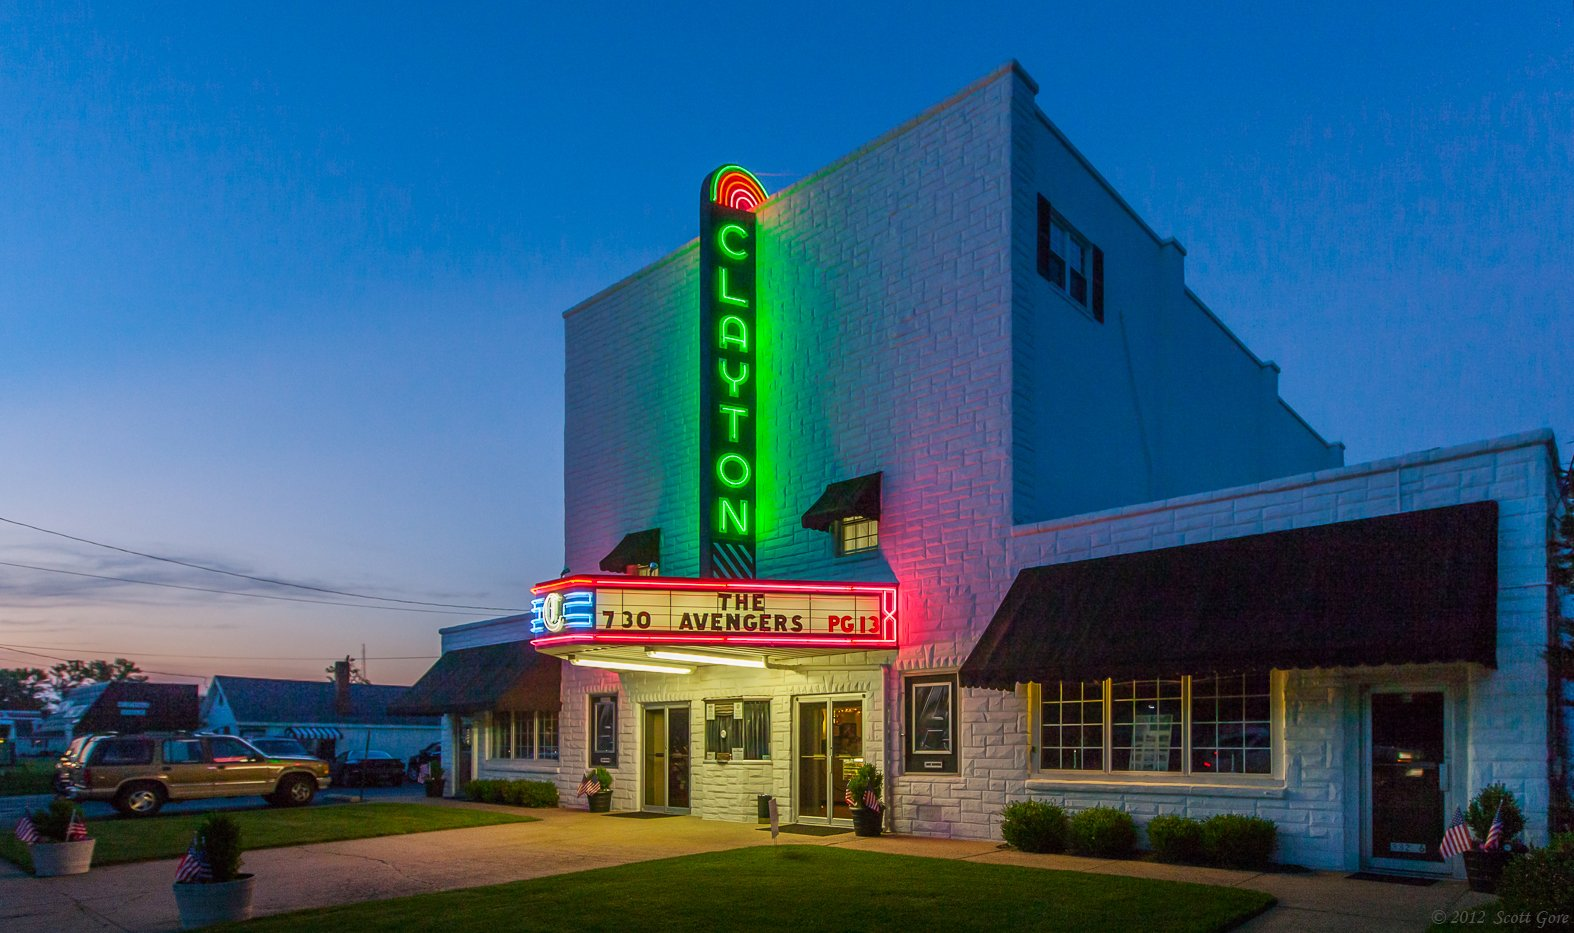 clayton-theater-image